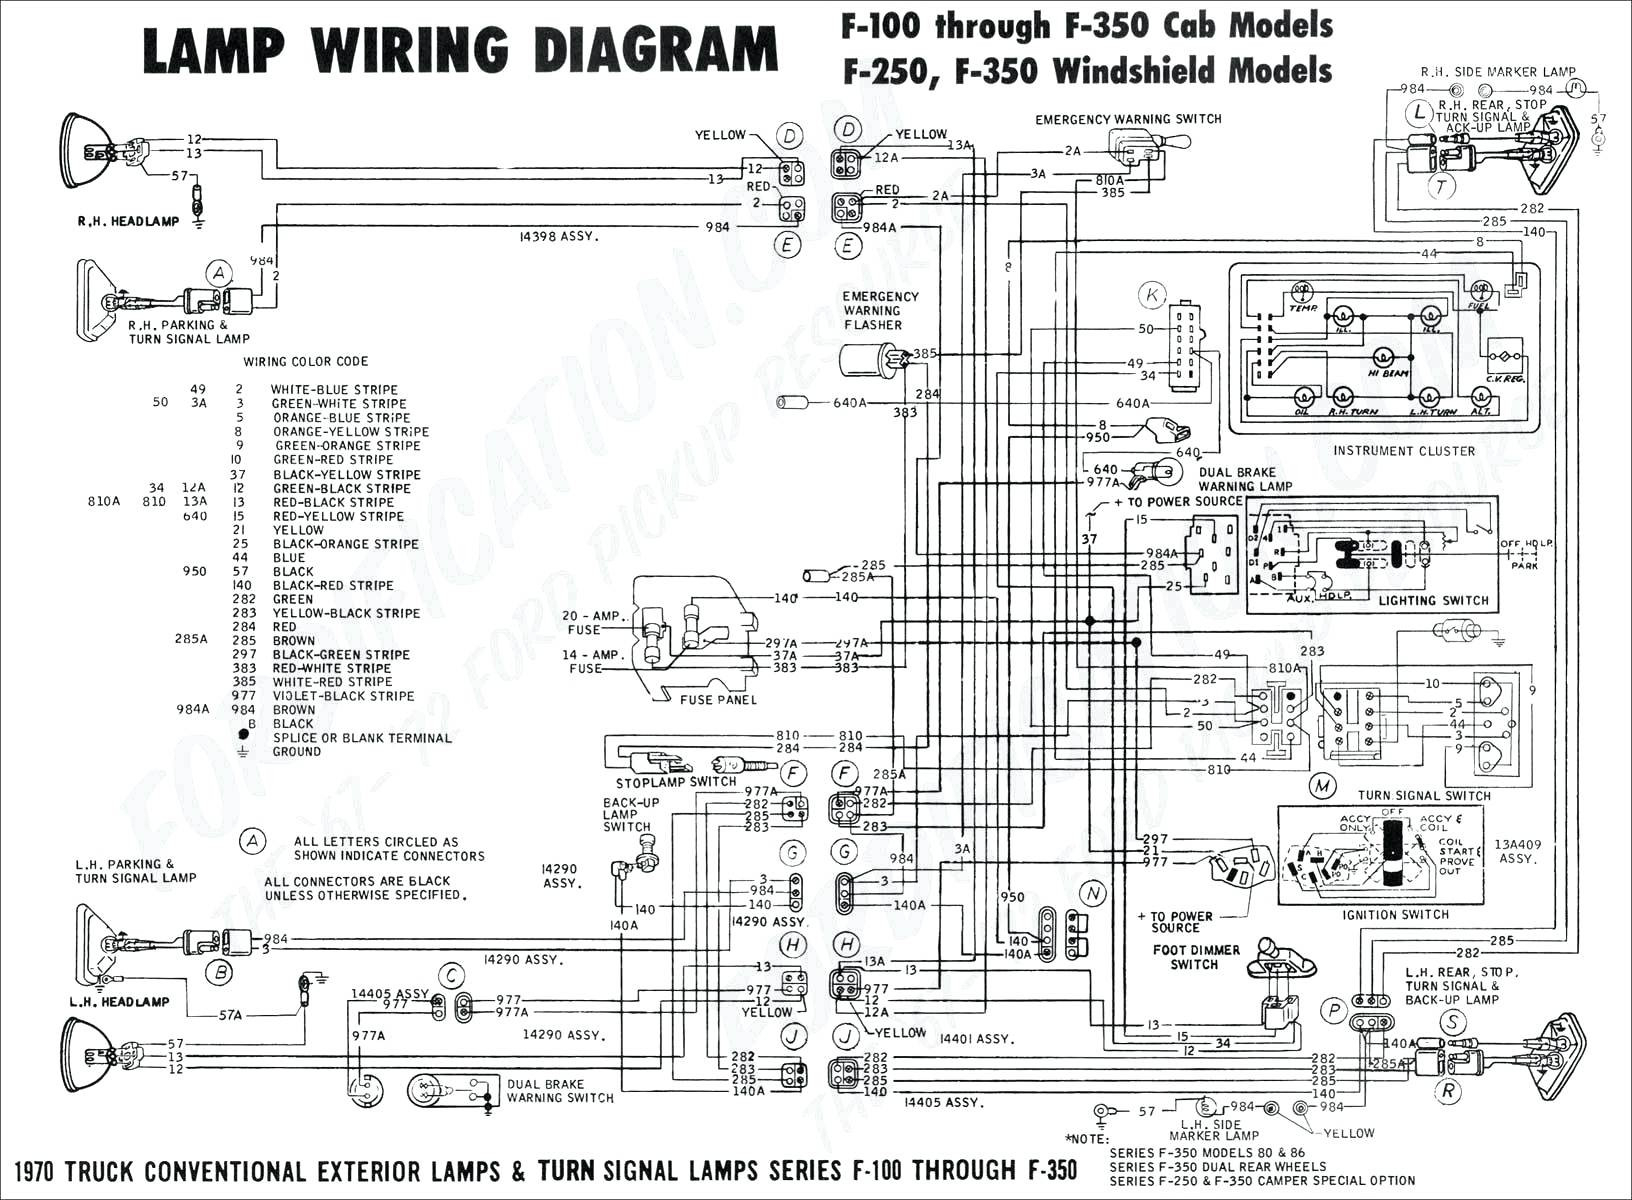 1995 ford f250 trailer wiring diagram Download-Ford F350 Trailer Wiring Diagram Trailer Wiring Diagram ford Ranger Inspirationa 2000 ford F250 Trailer 19-g